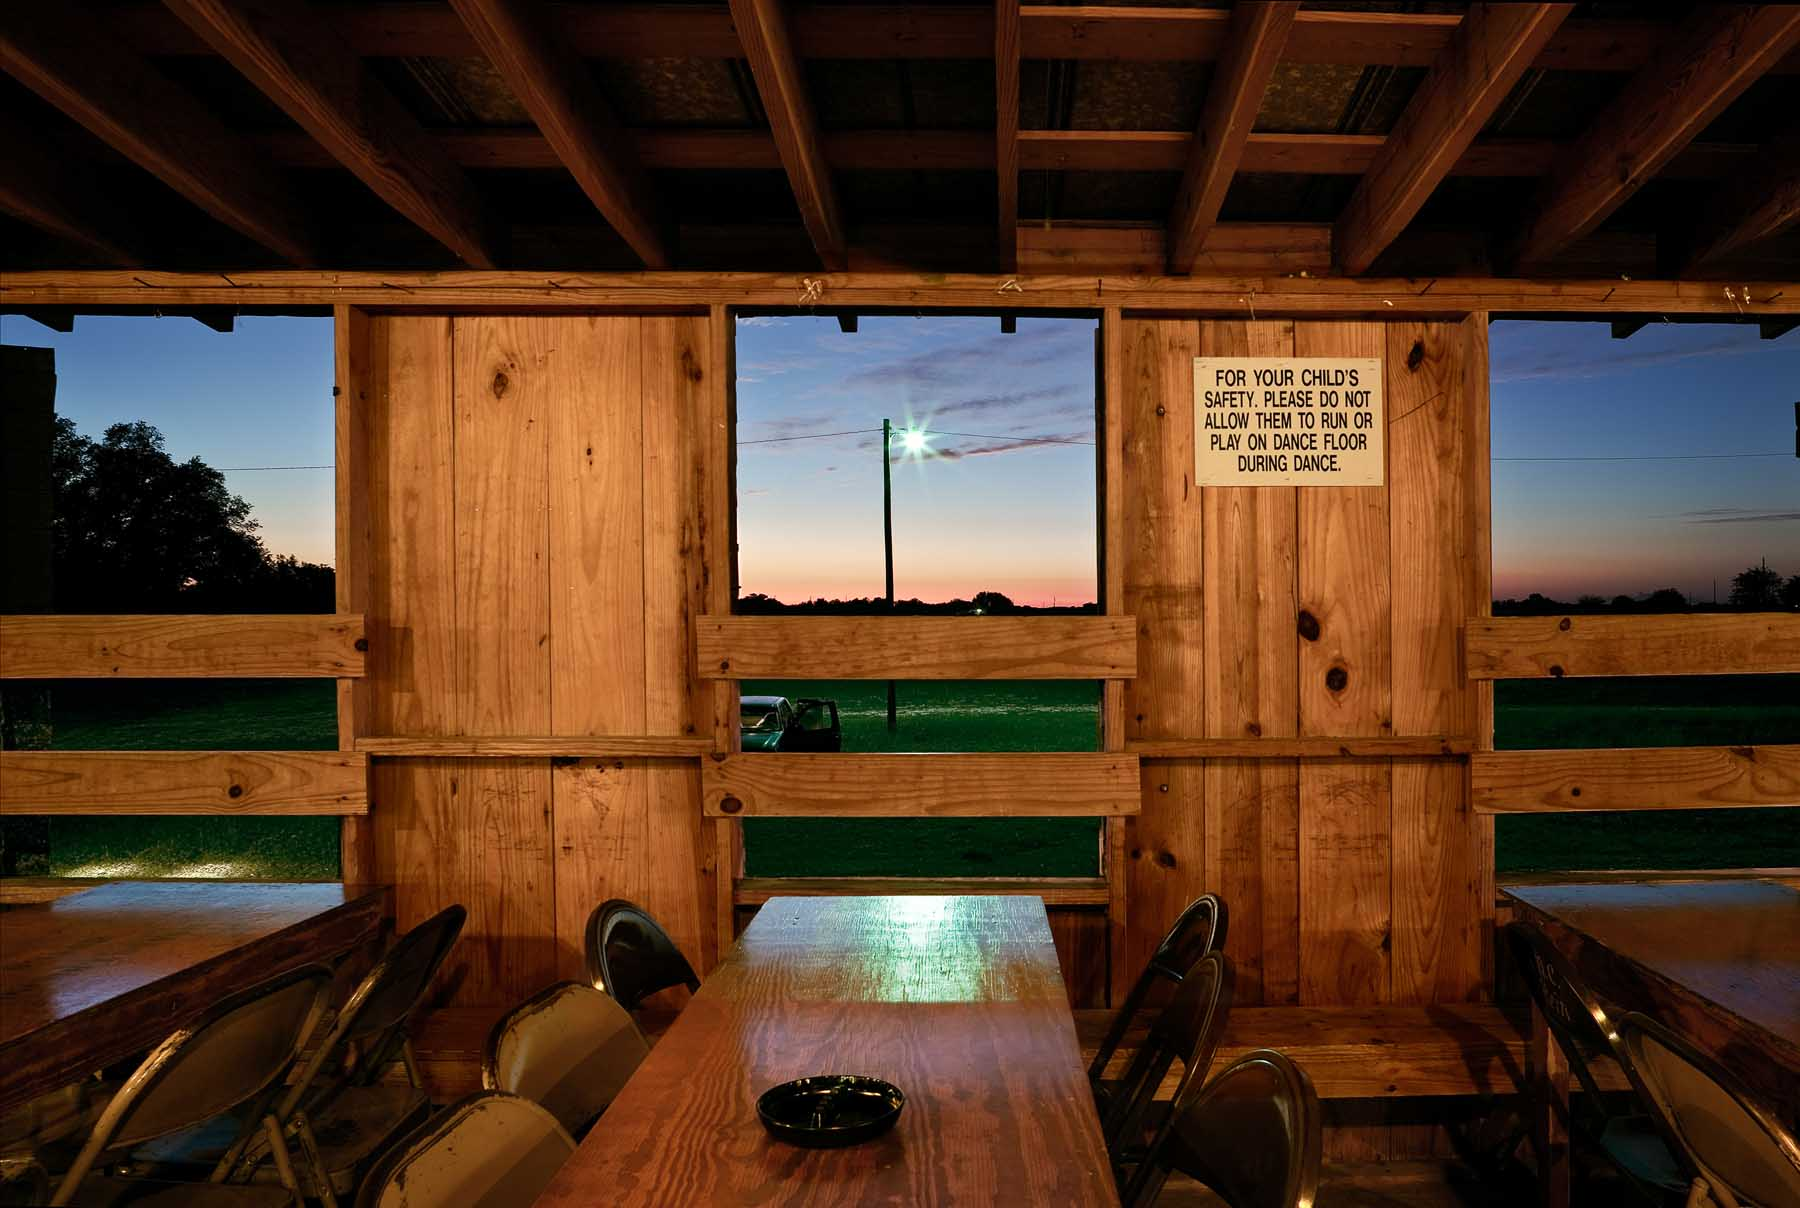 TEXAS DANCEHALLS, QUIHI GUN CLUB